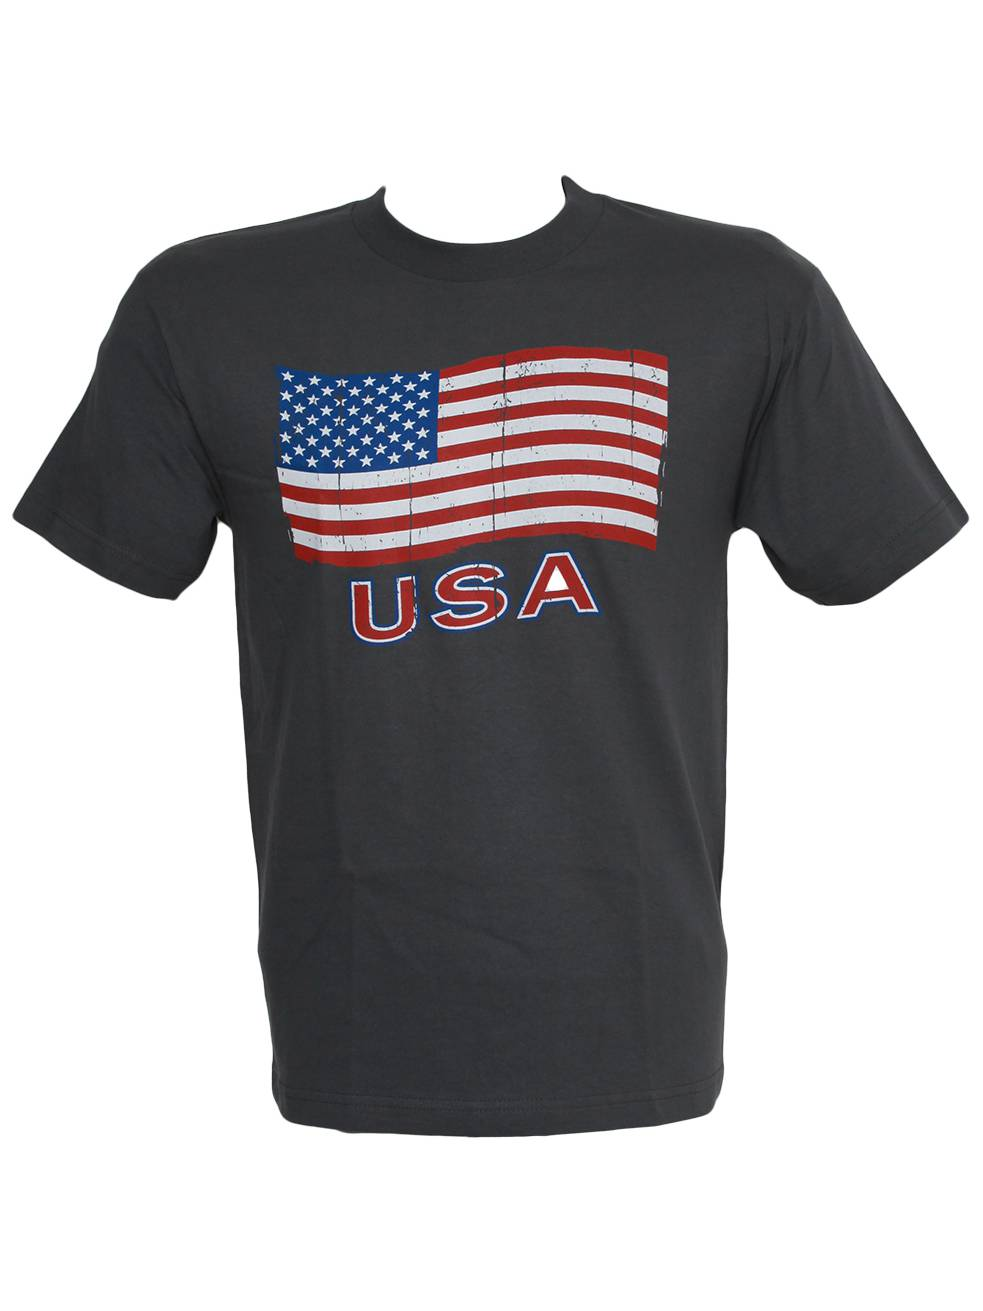 14a601ab7 Gravity Trading - United States of America Flag USA T Shirt - Walmart ...